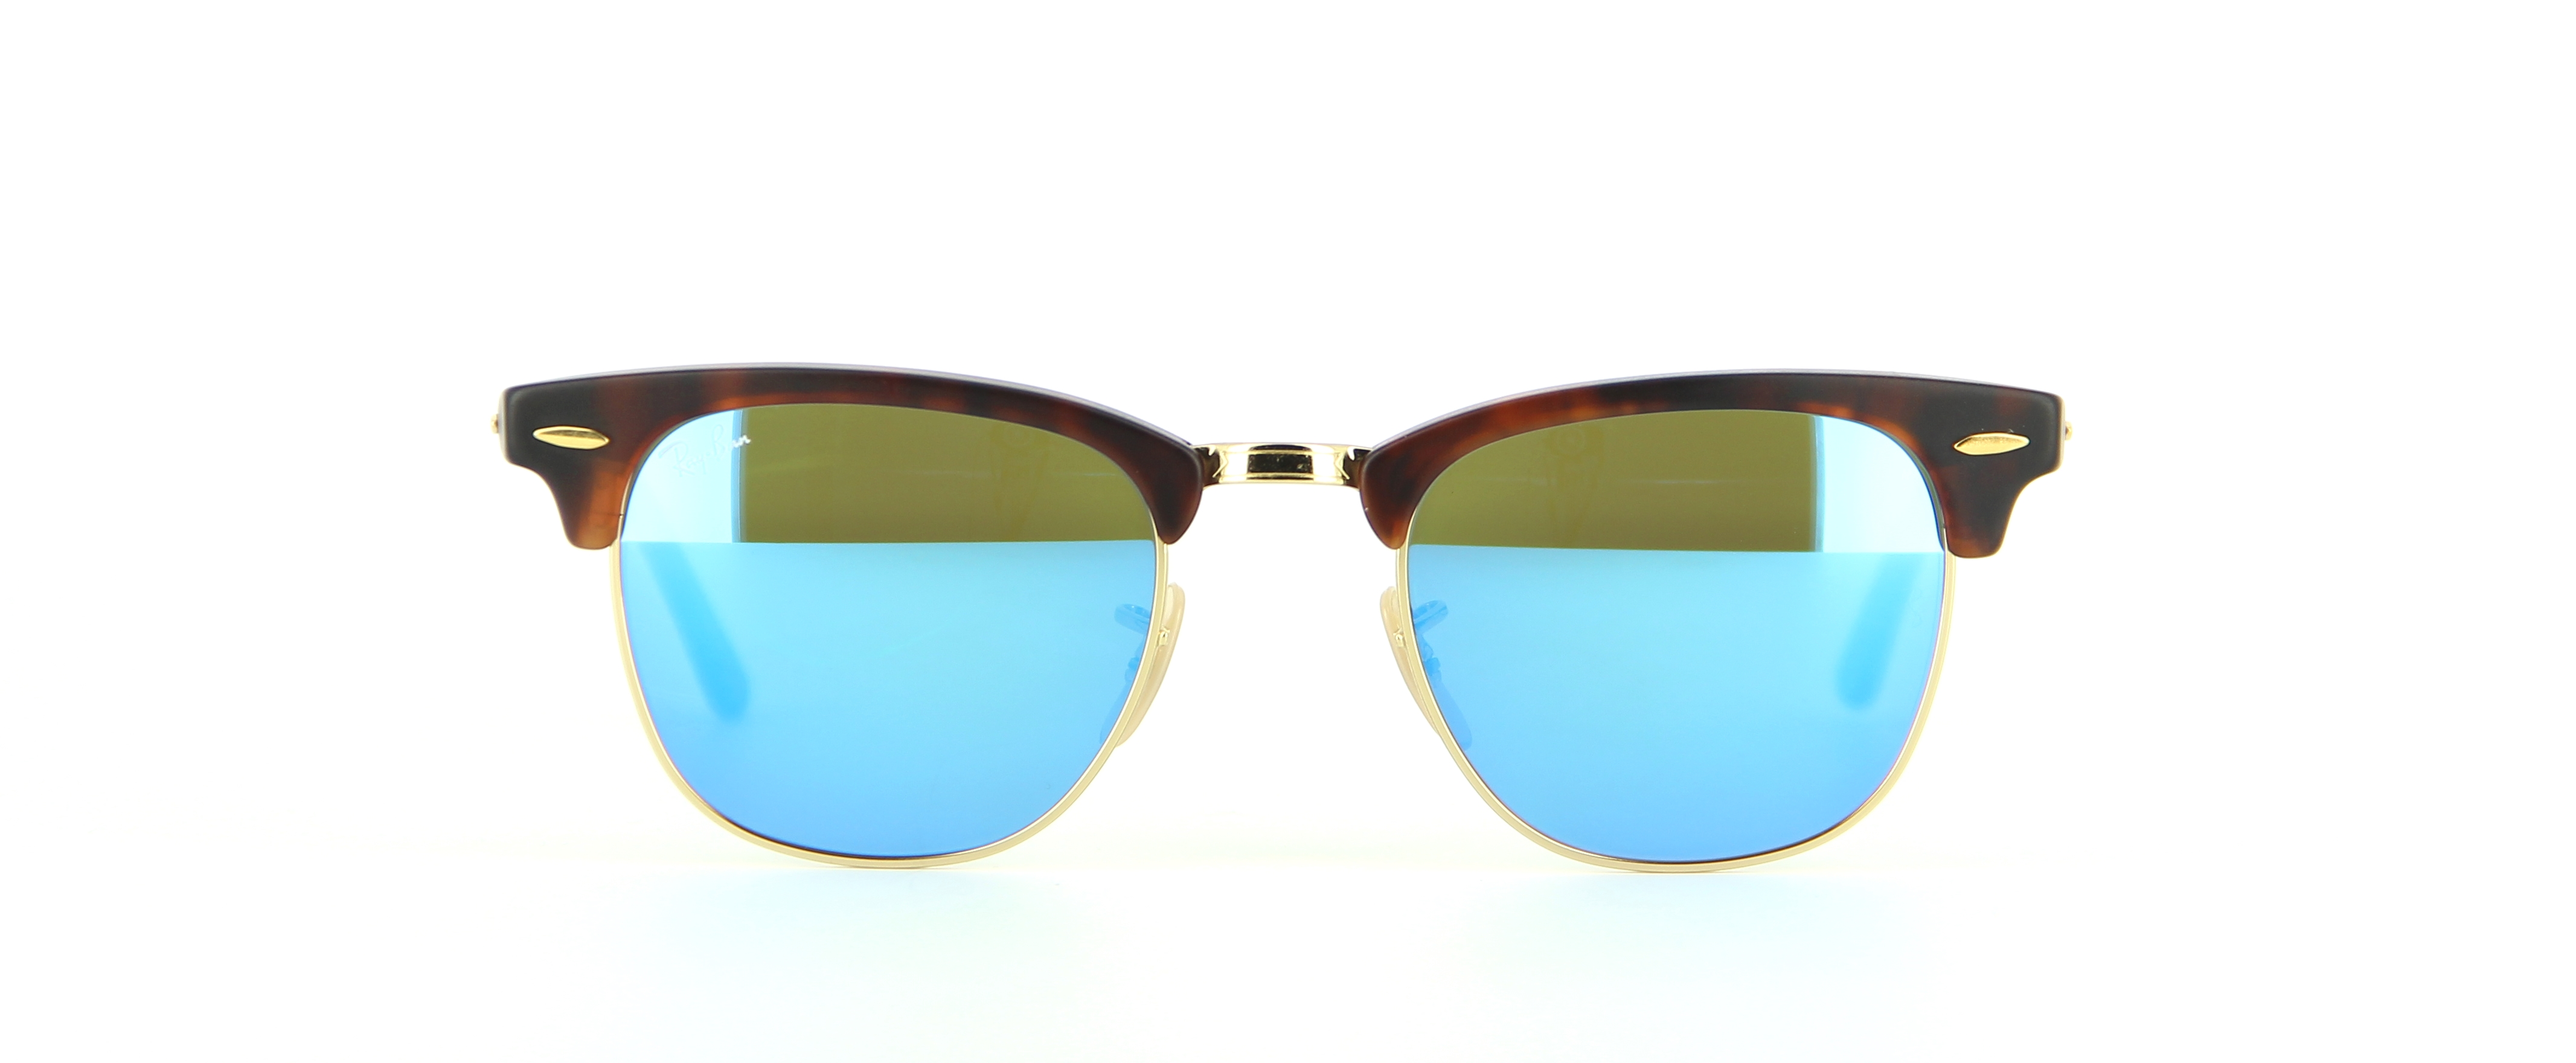 Ray Ban Clubmaster Optical Center   David Simchi-Levi b3d86c30e161